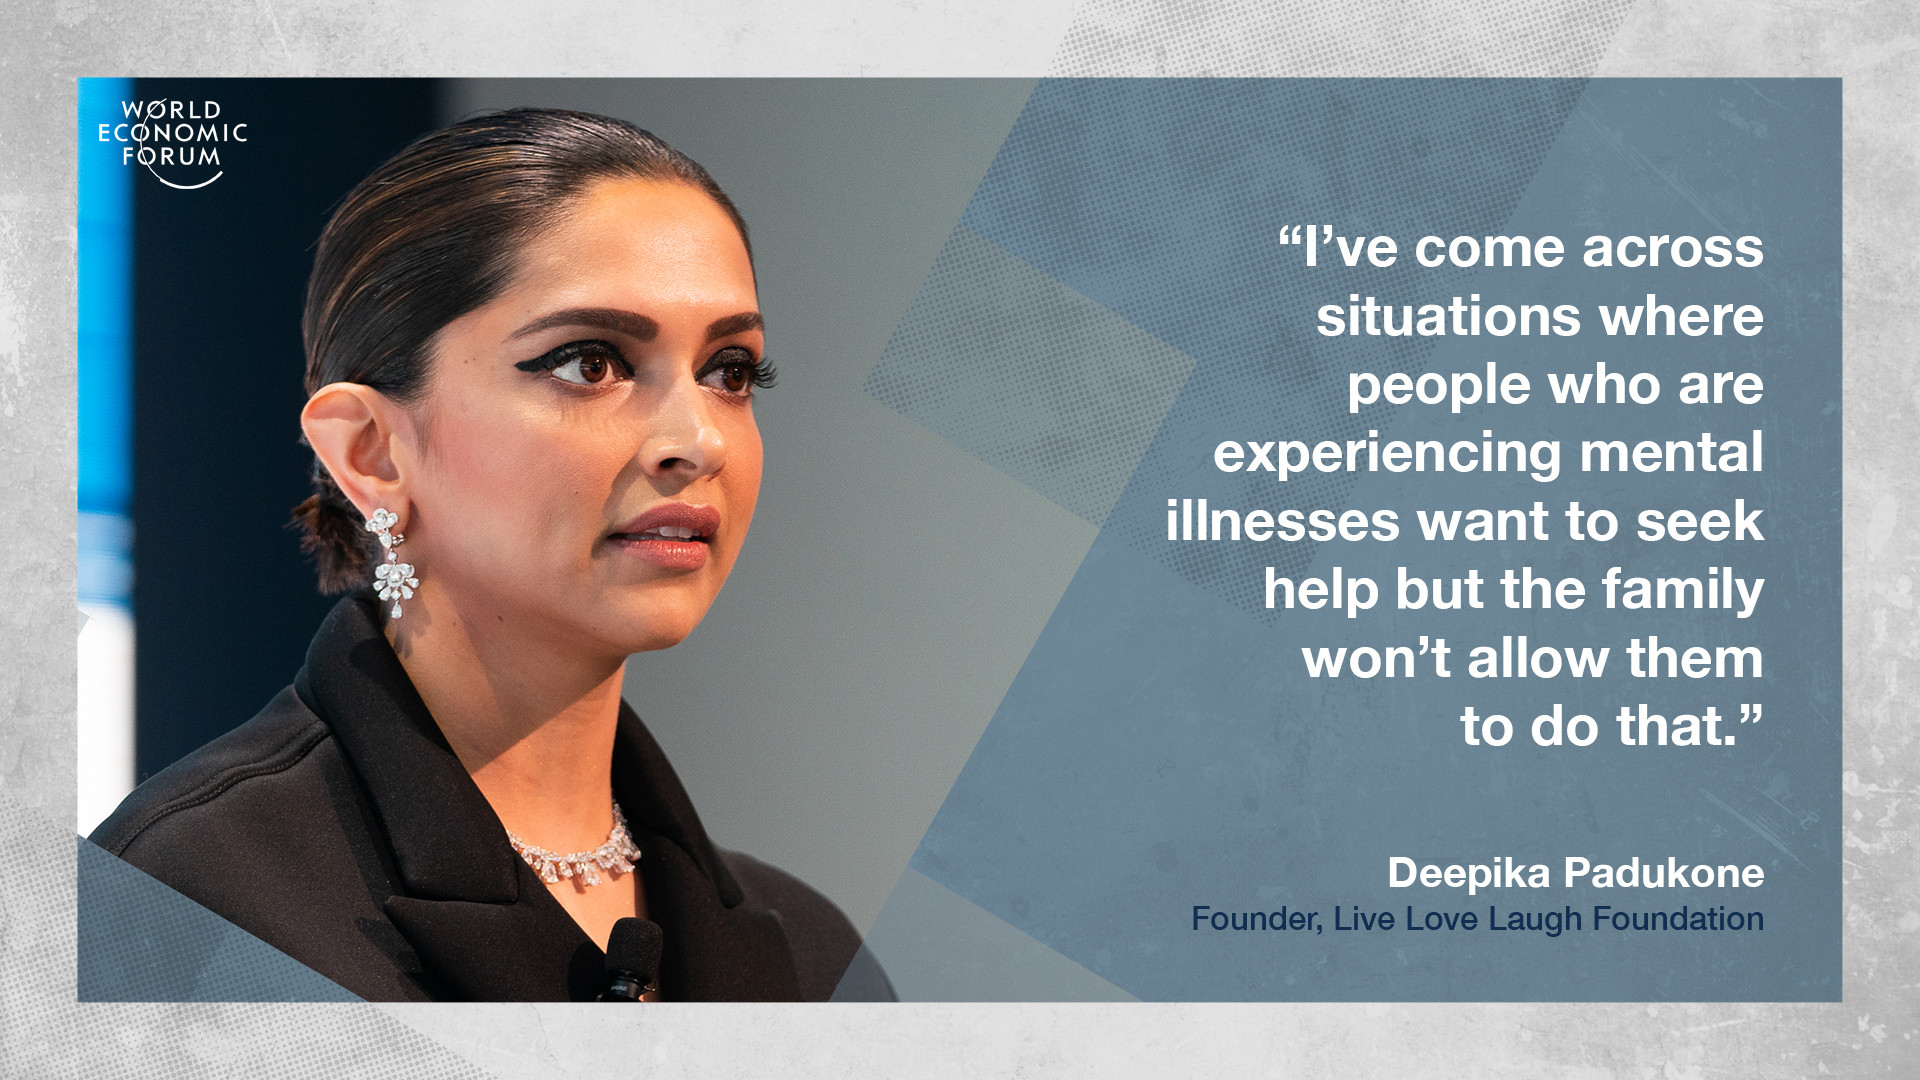 Deepika Padukone on stigma around seeking help for mental health